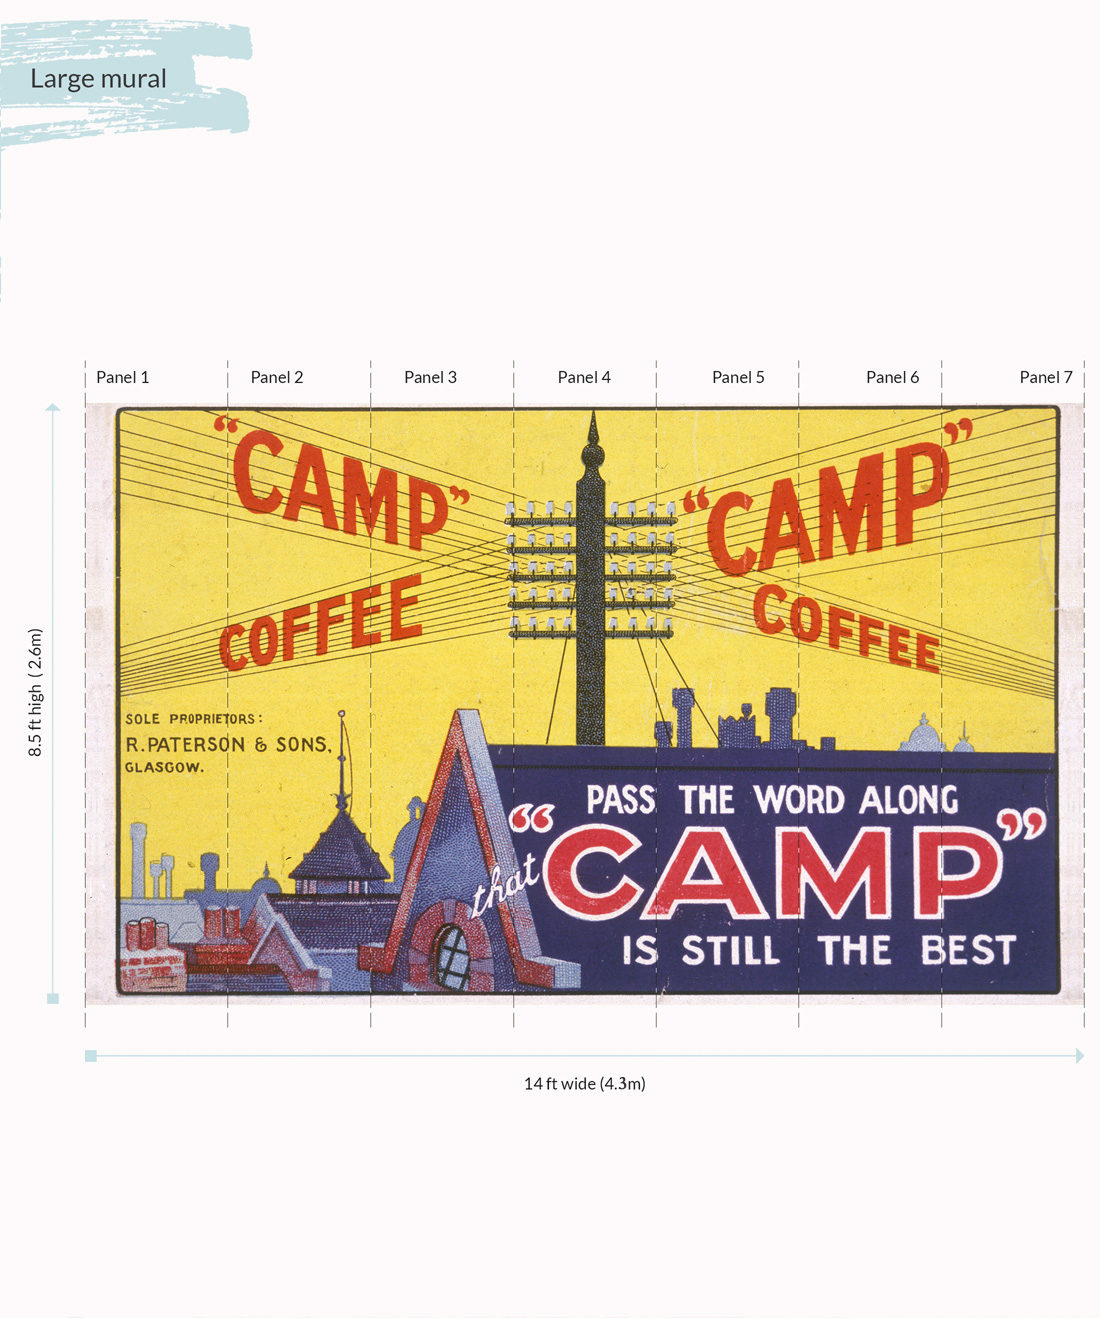 Camp Coffee Wall Mural - Large